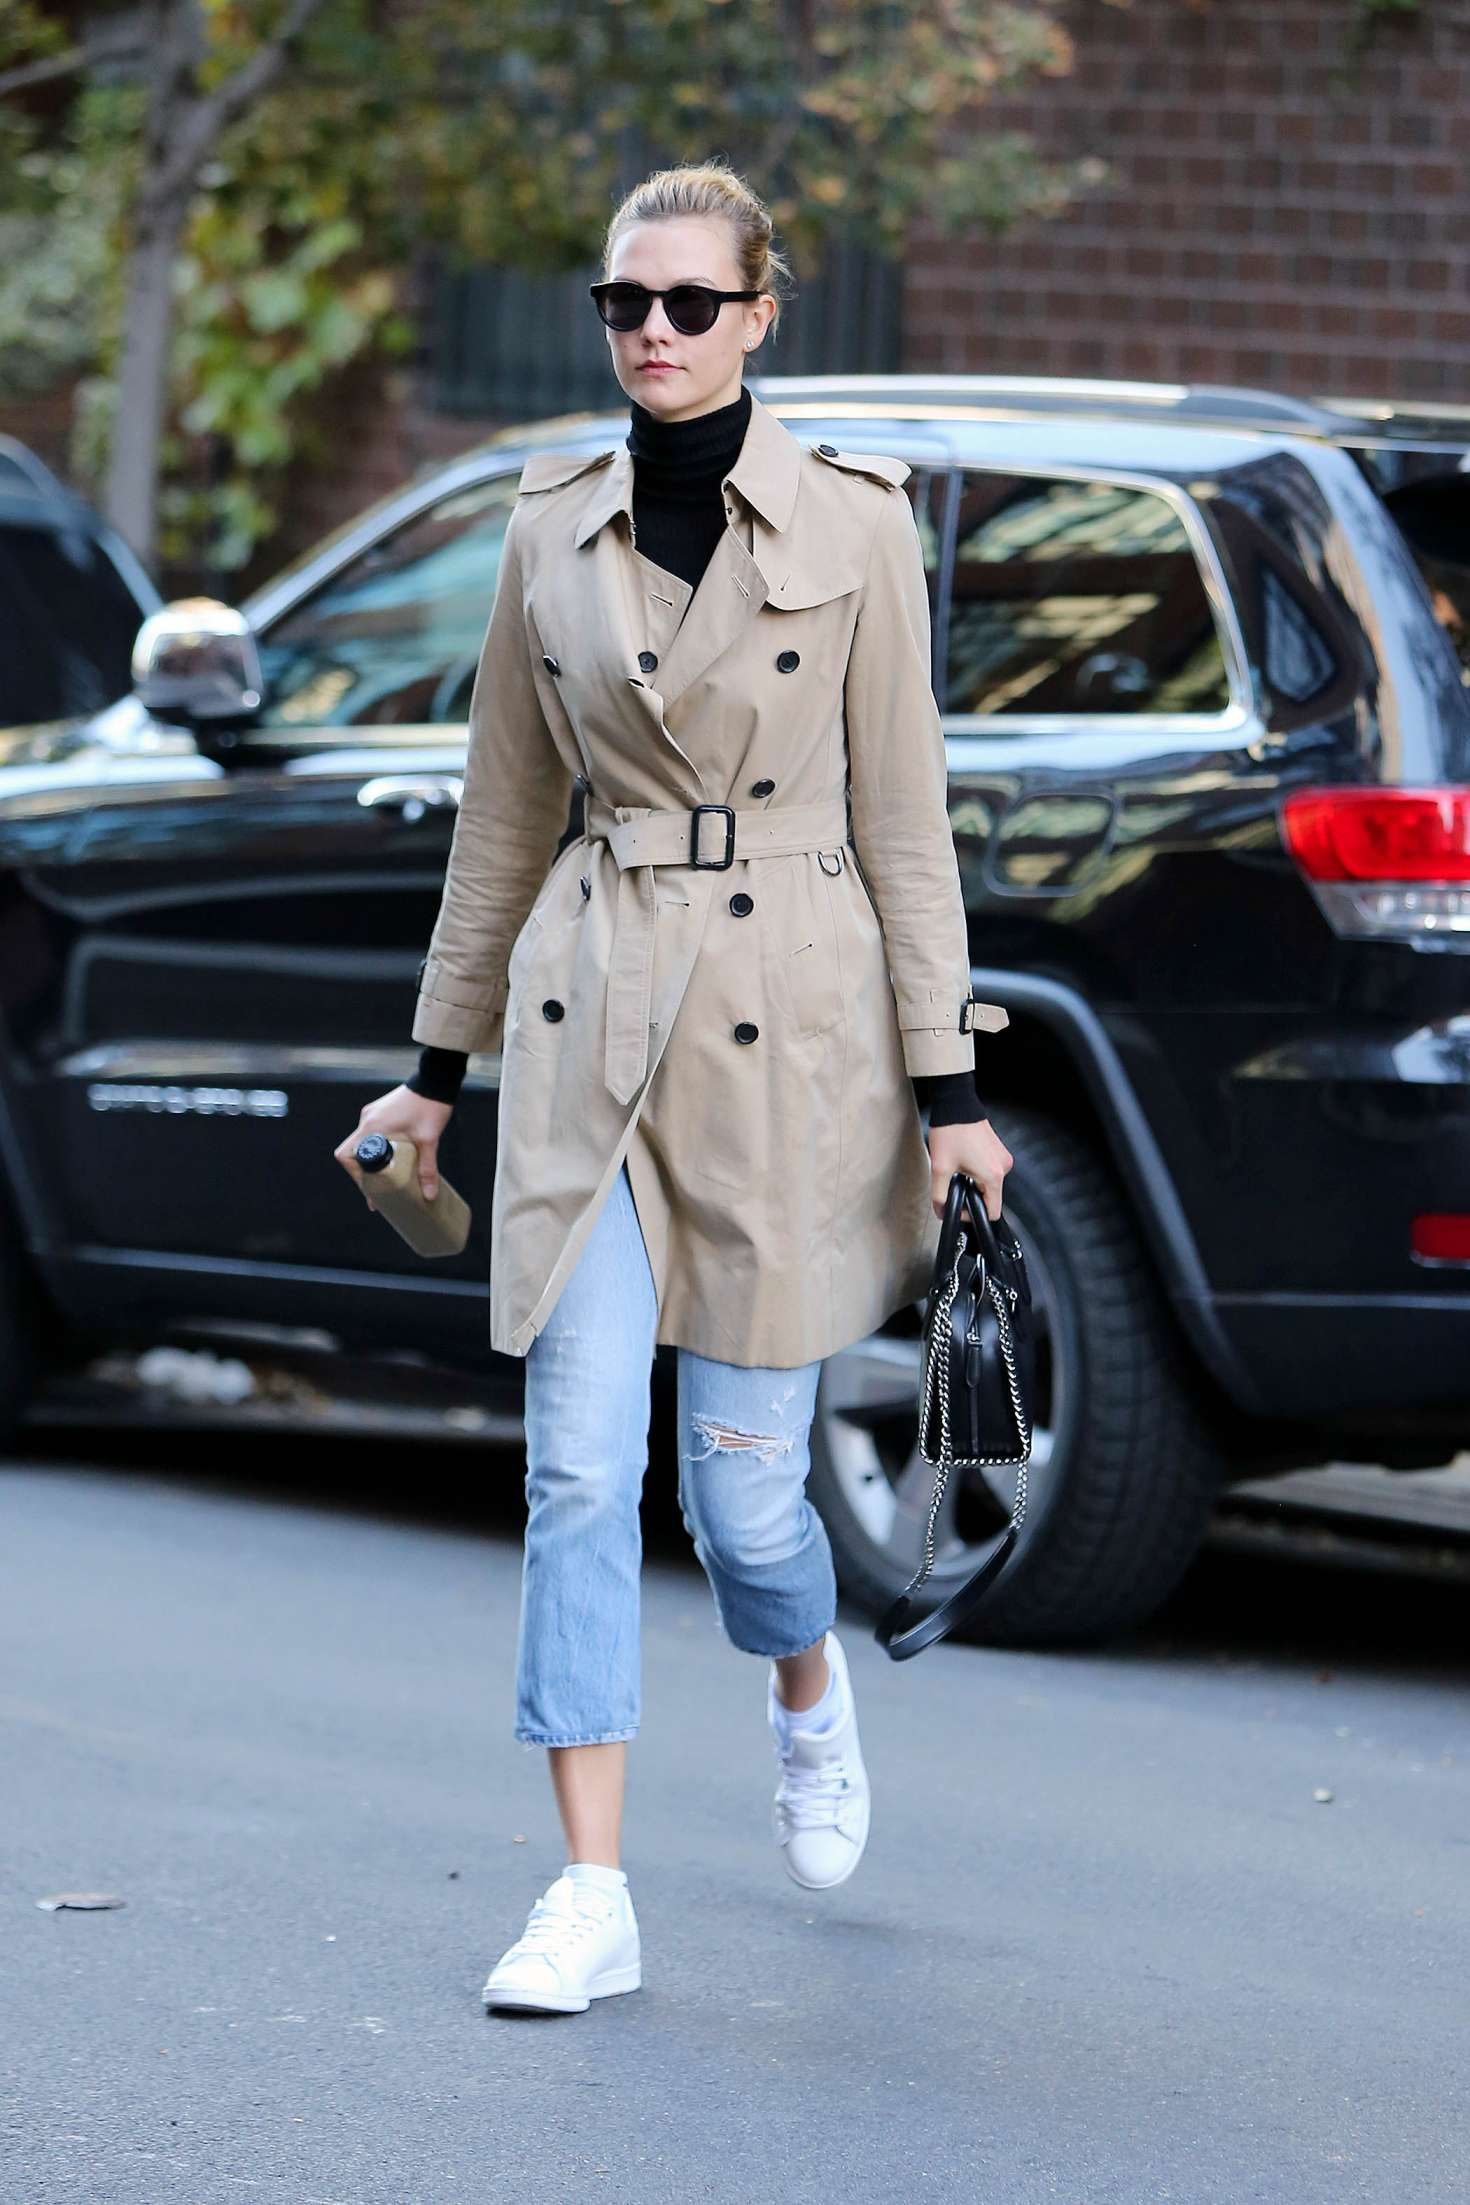 Karlie Kloss 2016 : Karlie Kloss in Jeans and Coat -10